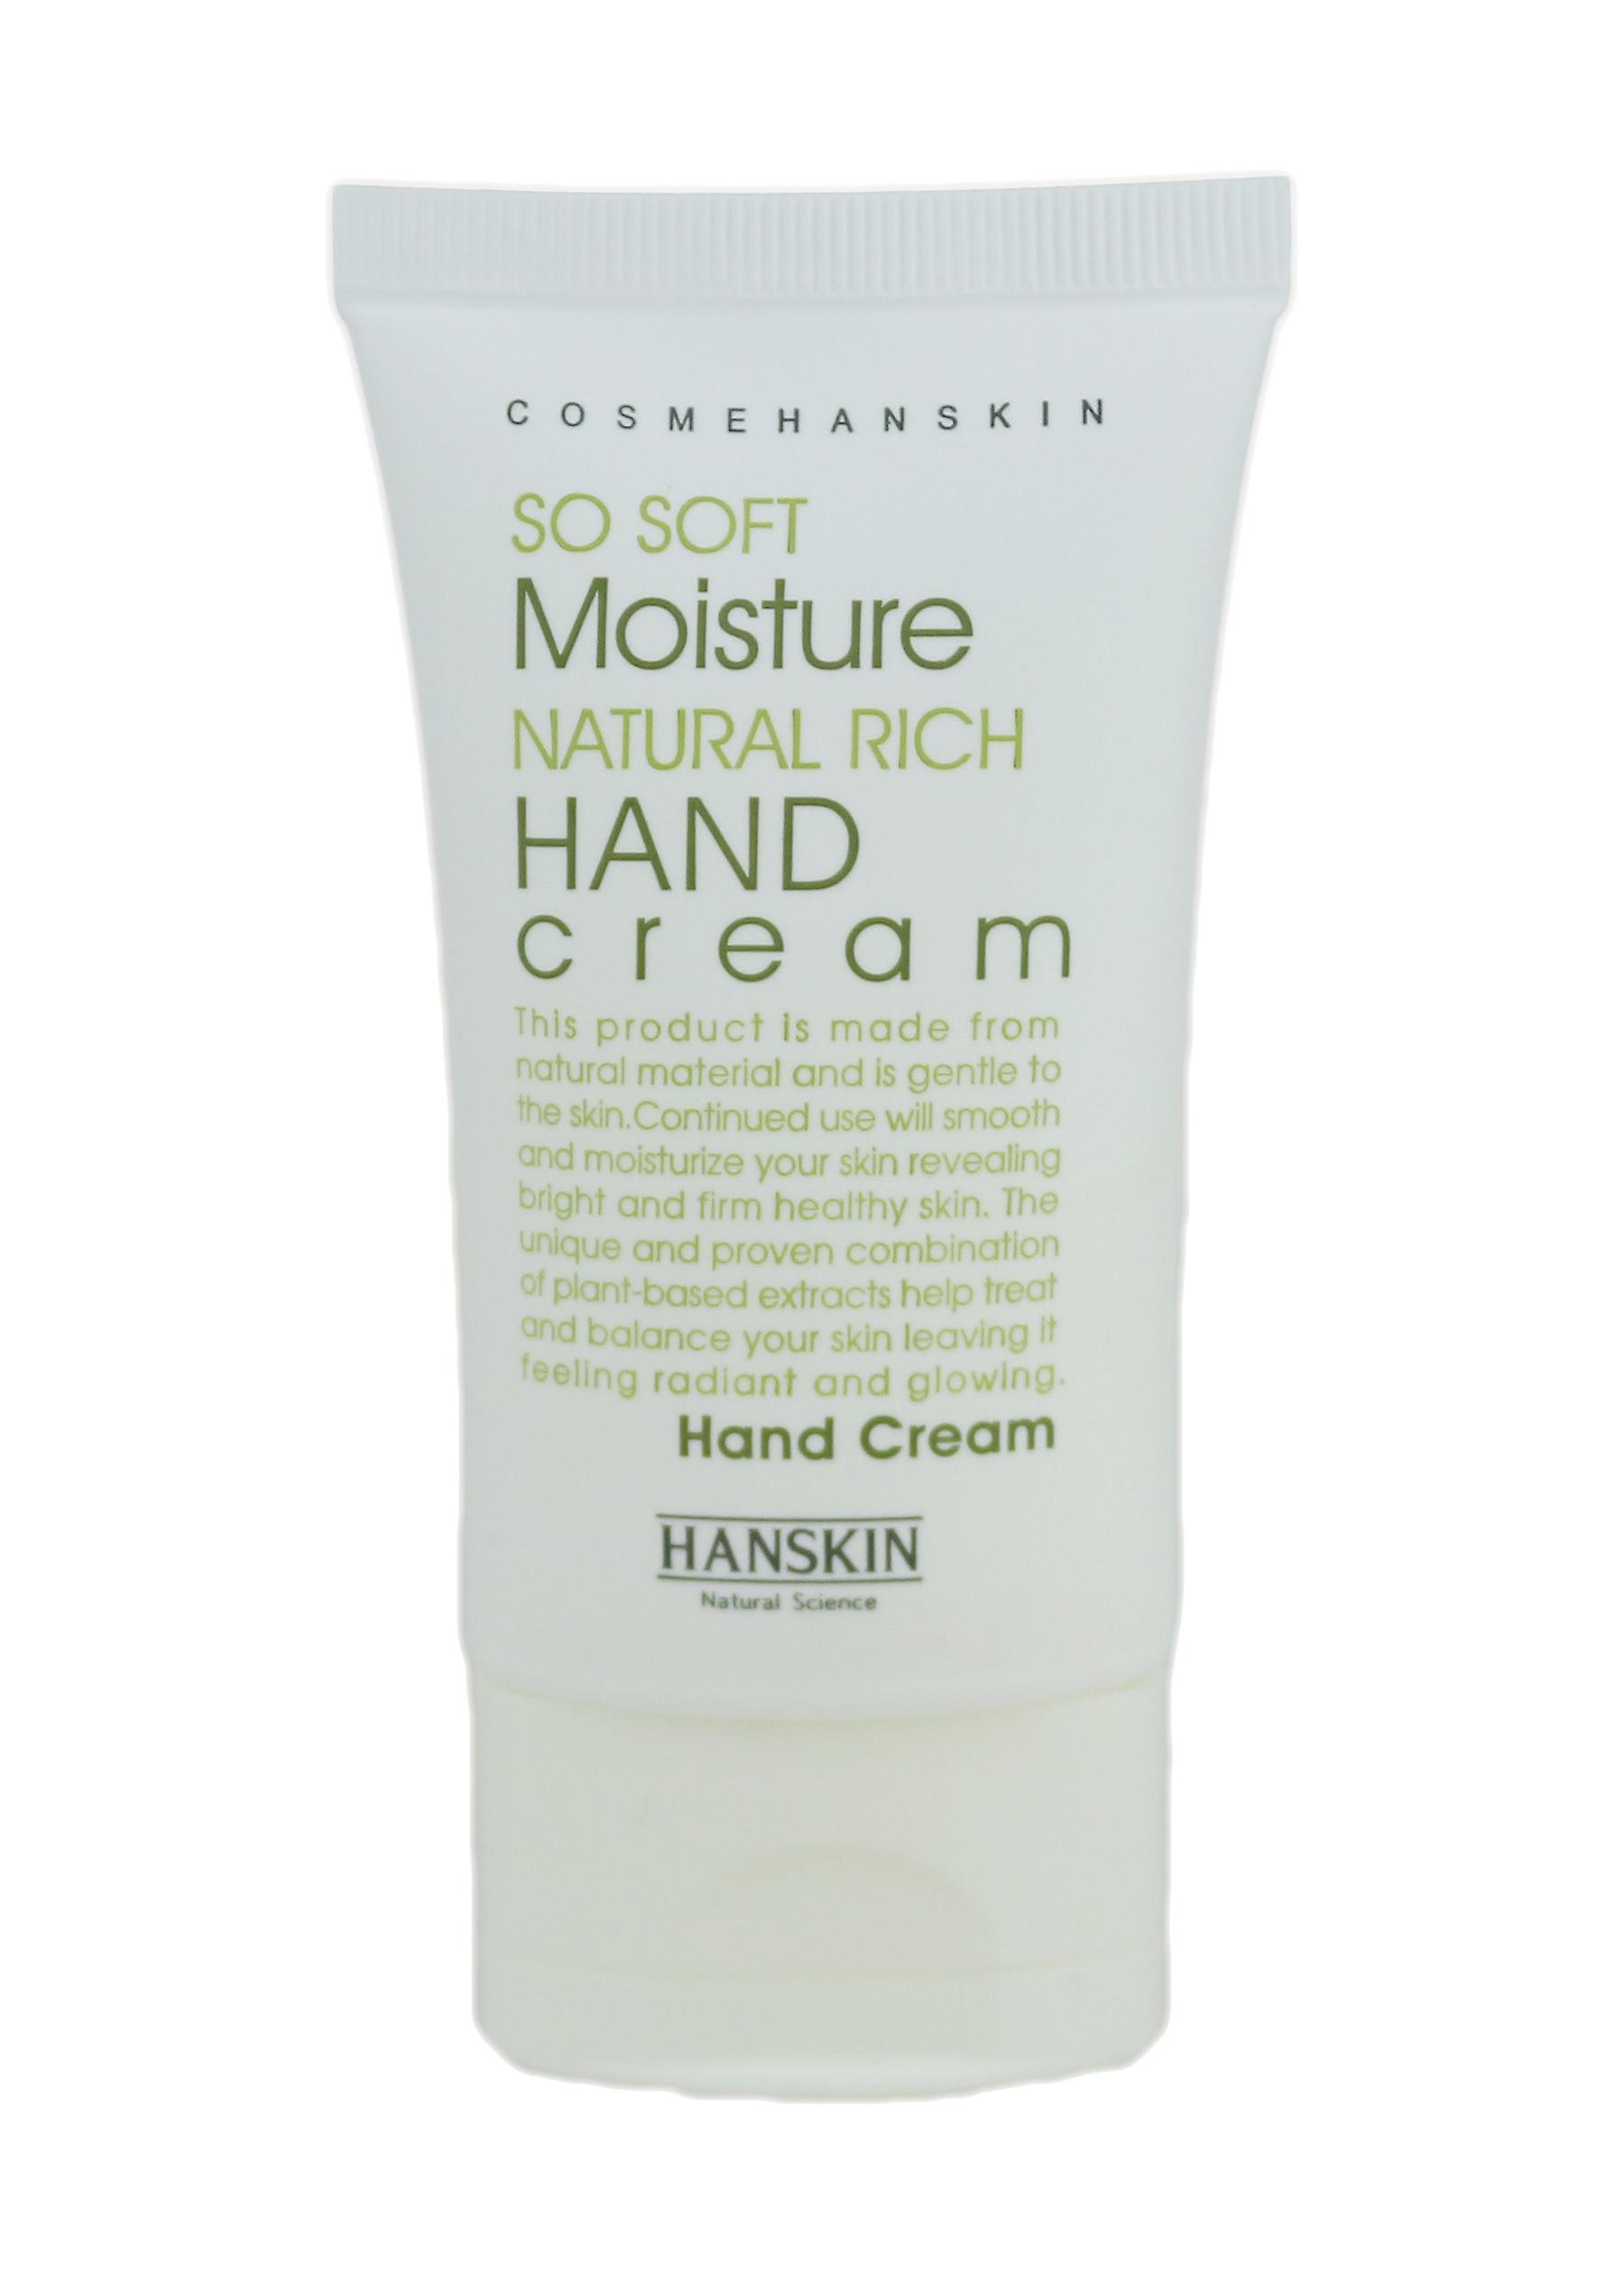 Drop New Moisture So 40g In Cream 4oz Box Water 1 Hanskin Soft Hand N8kwXPn0O